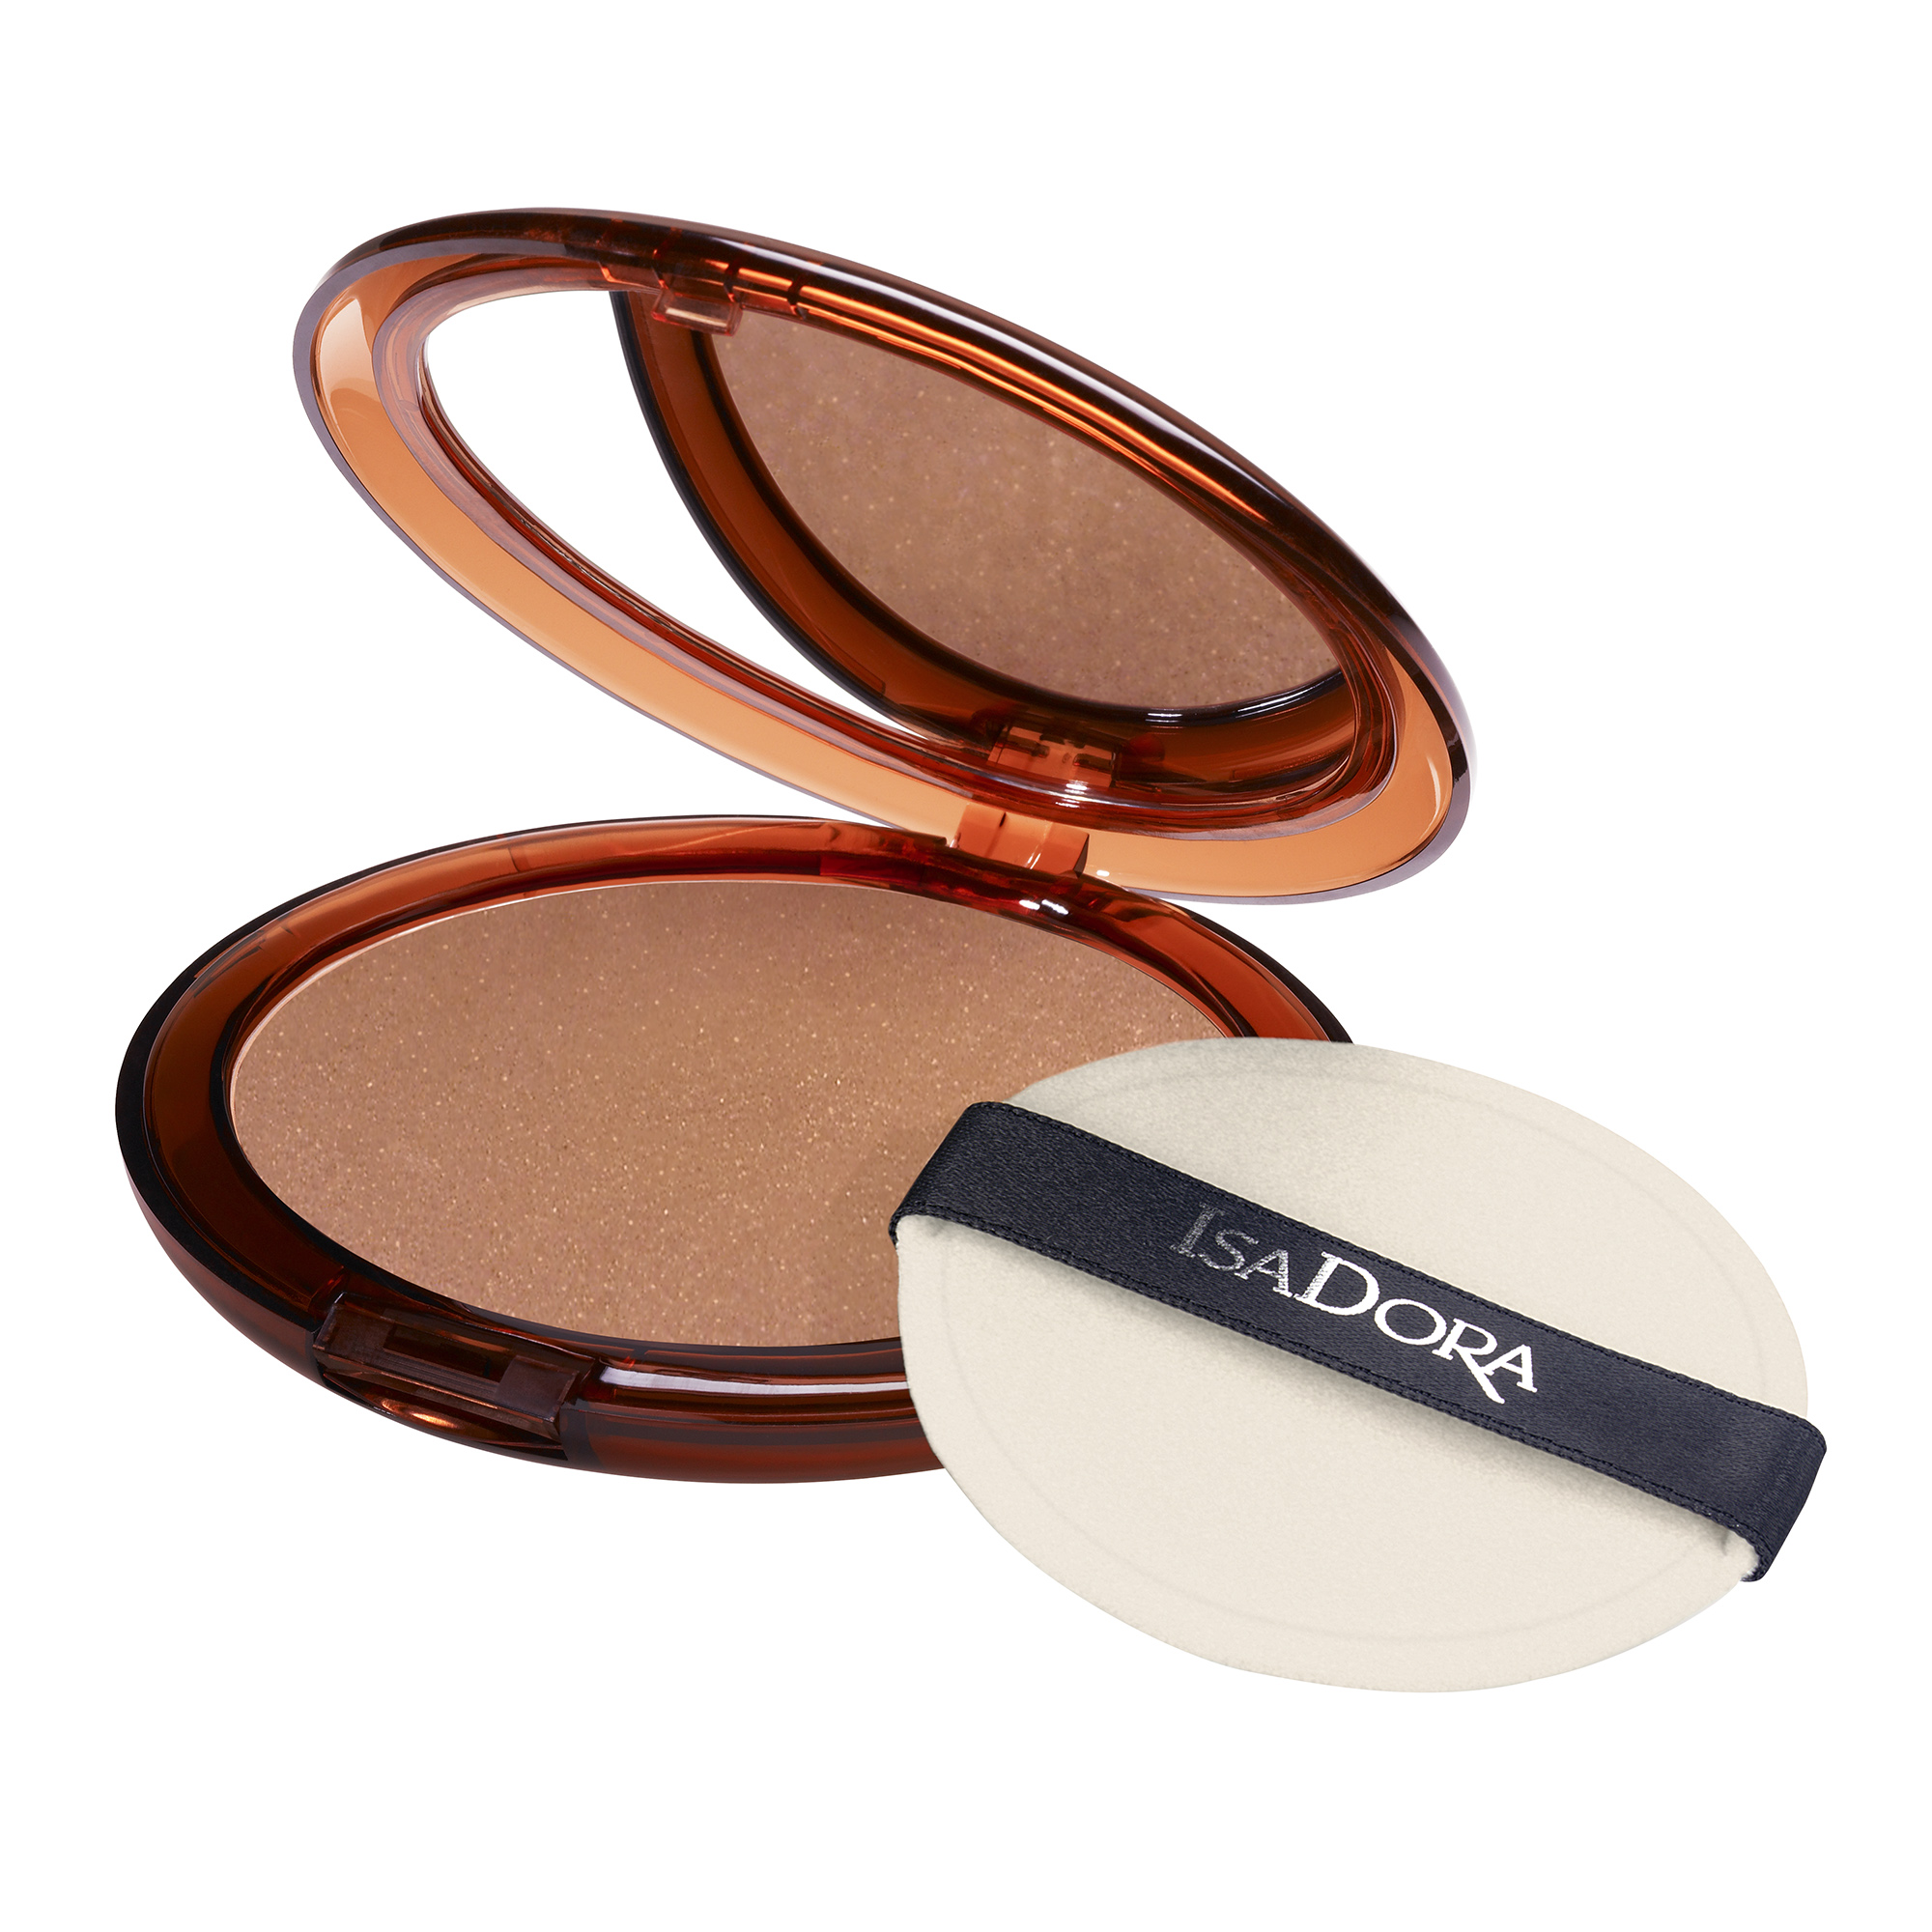 Bronzing Powder 44 Highlight Bronze